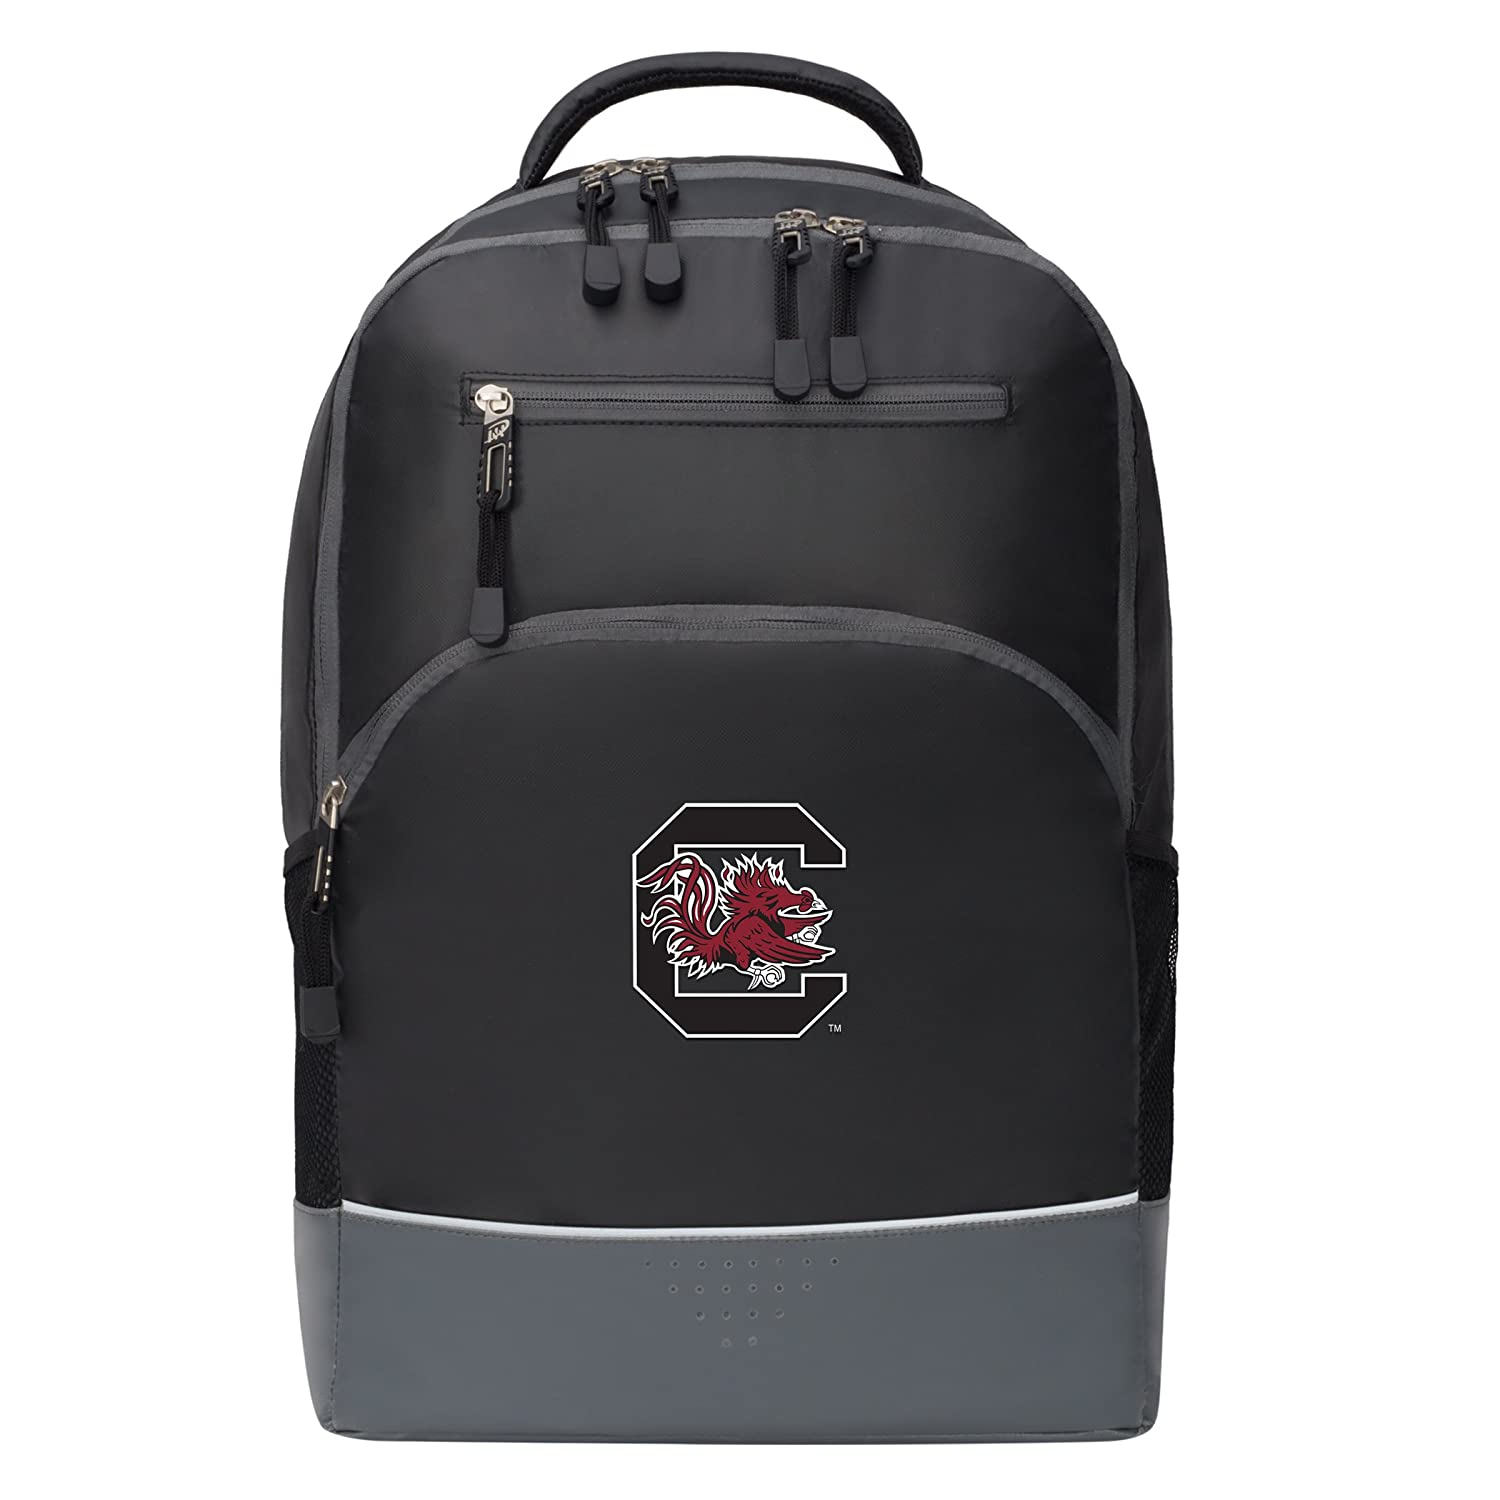 The Northwest Company Officially Licensed NCAA Alliance Backpack Black 19